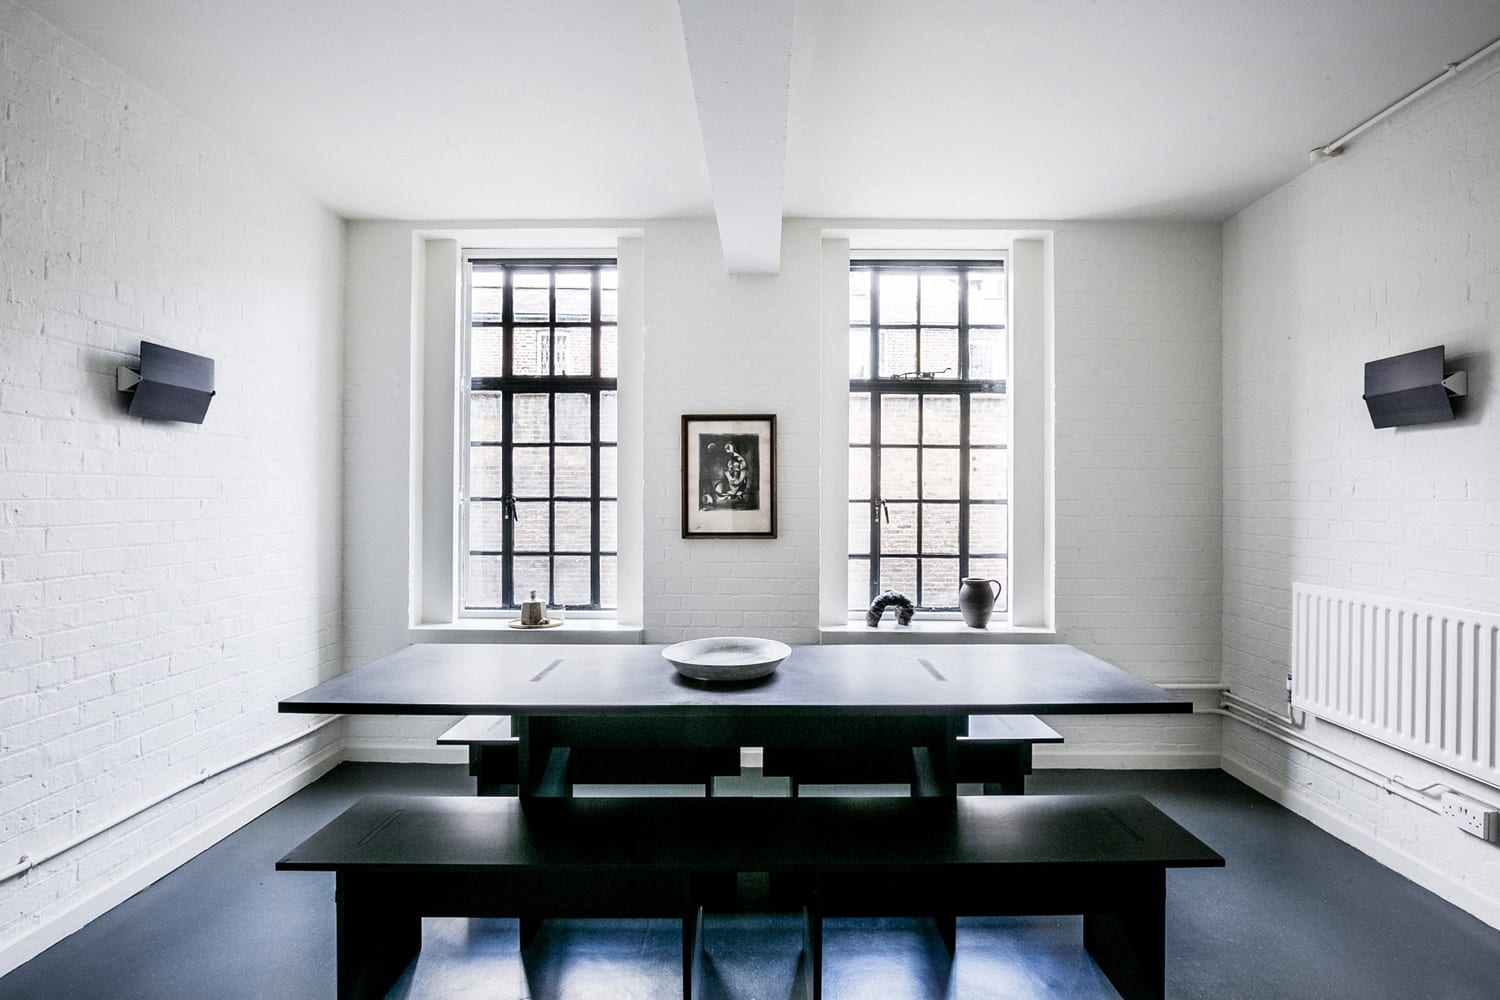 The modern houses new hq inside a converted 1930s church hall transformed by tdo architecture